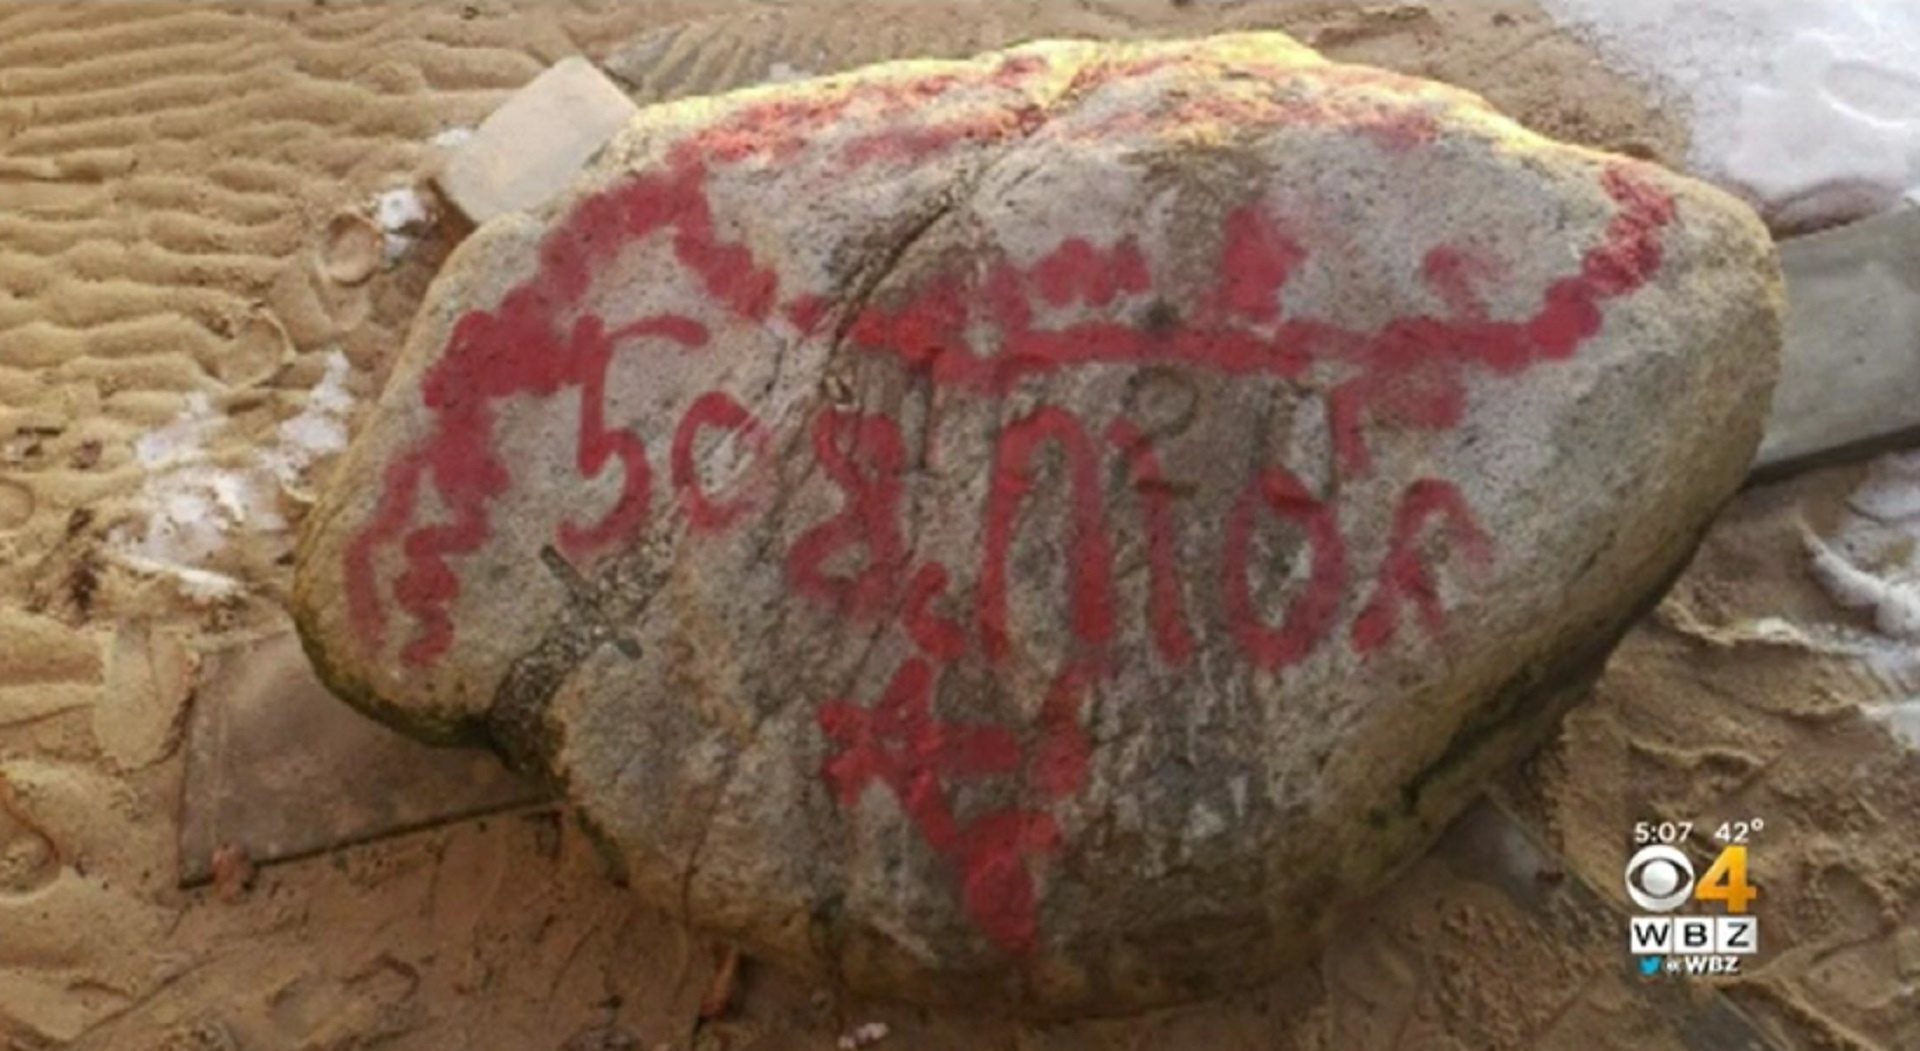 Plymouth Rock vandalized with red spray paint ahead of 400th anniversary celebration